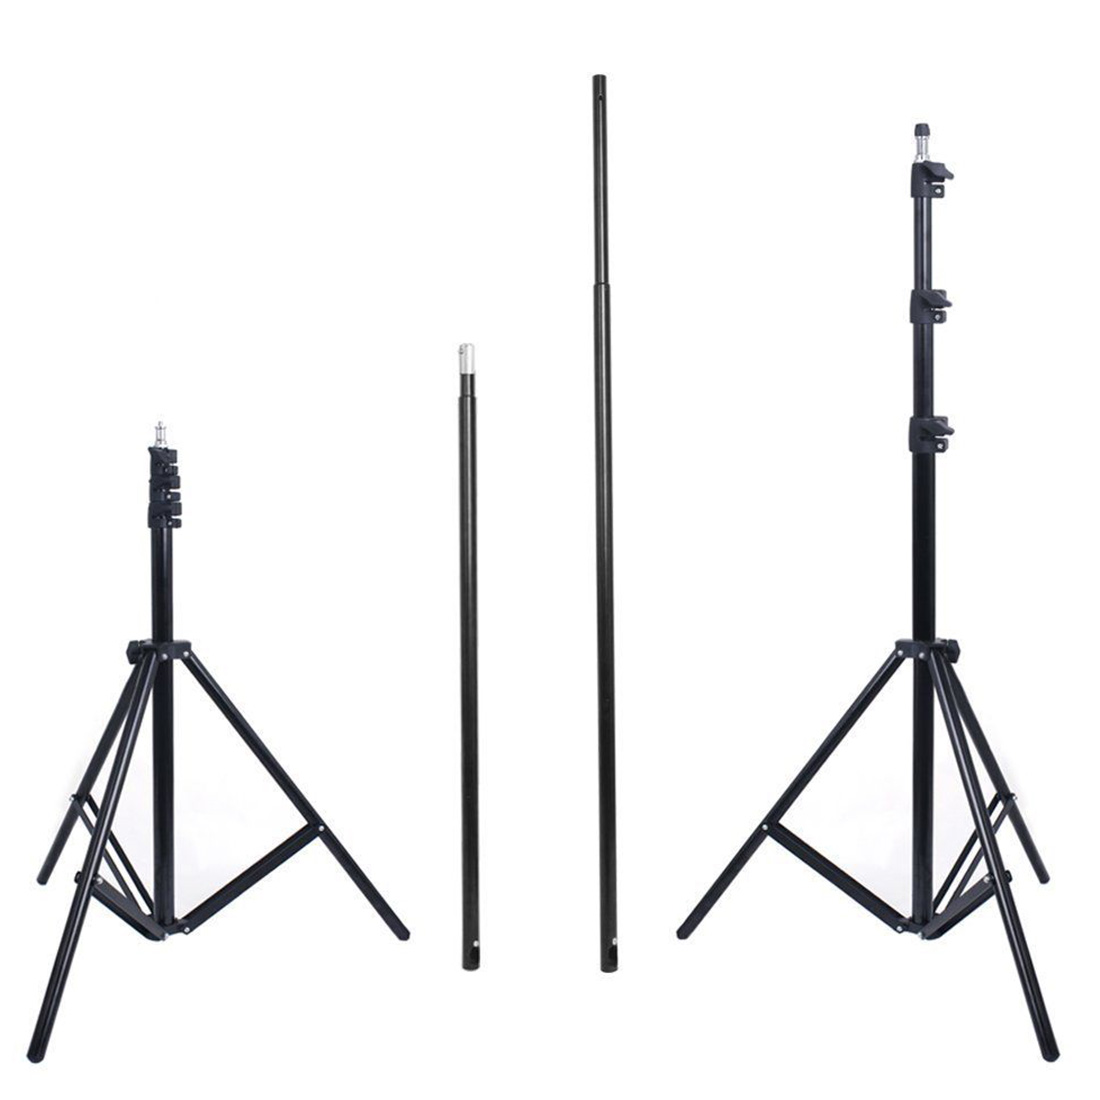 2.8m x 3m Photo Studio Background Backdrop Support Stand Kit + Free Carry Bag солнцезащитные очки oakley 0oo9009 12 79